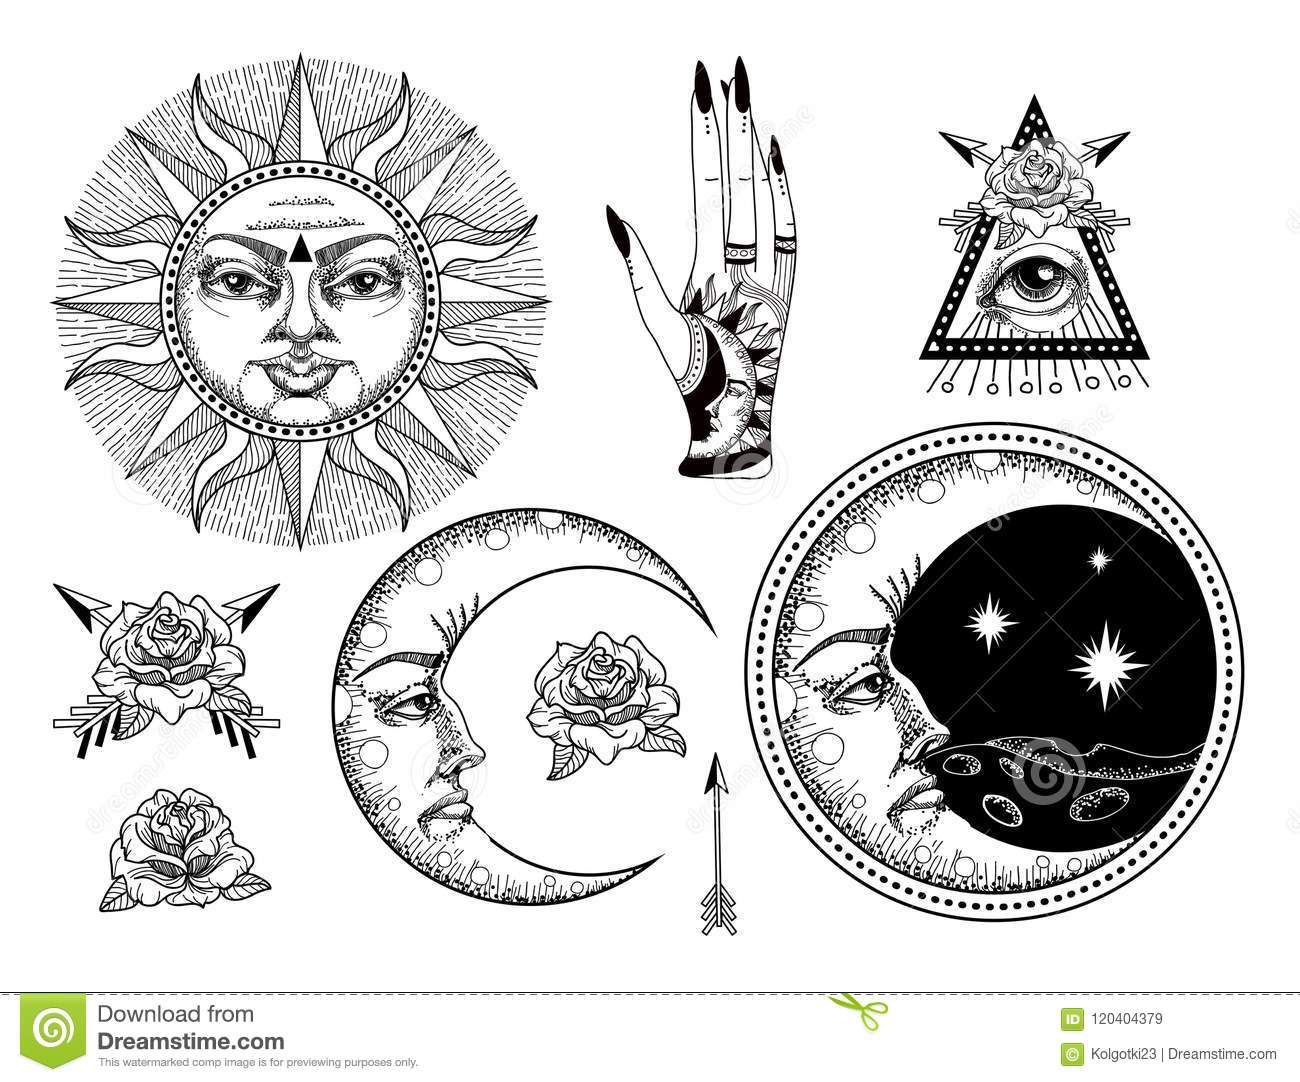 An Ancient Astronomical Illustration Of The Sun, The Moon